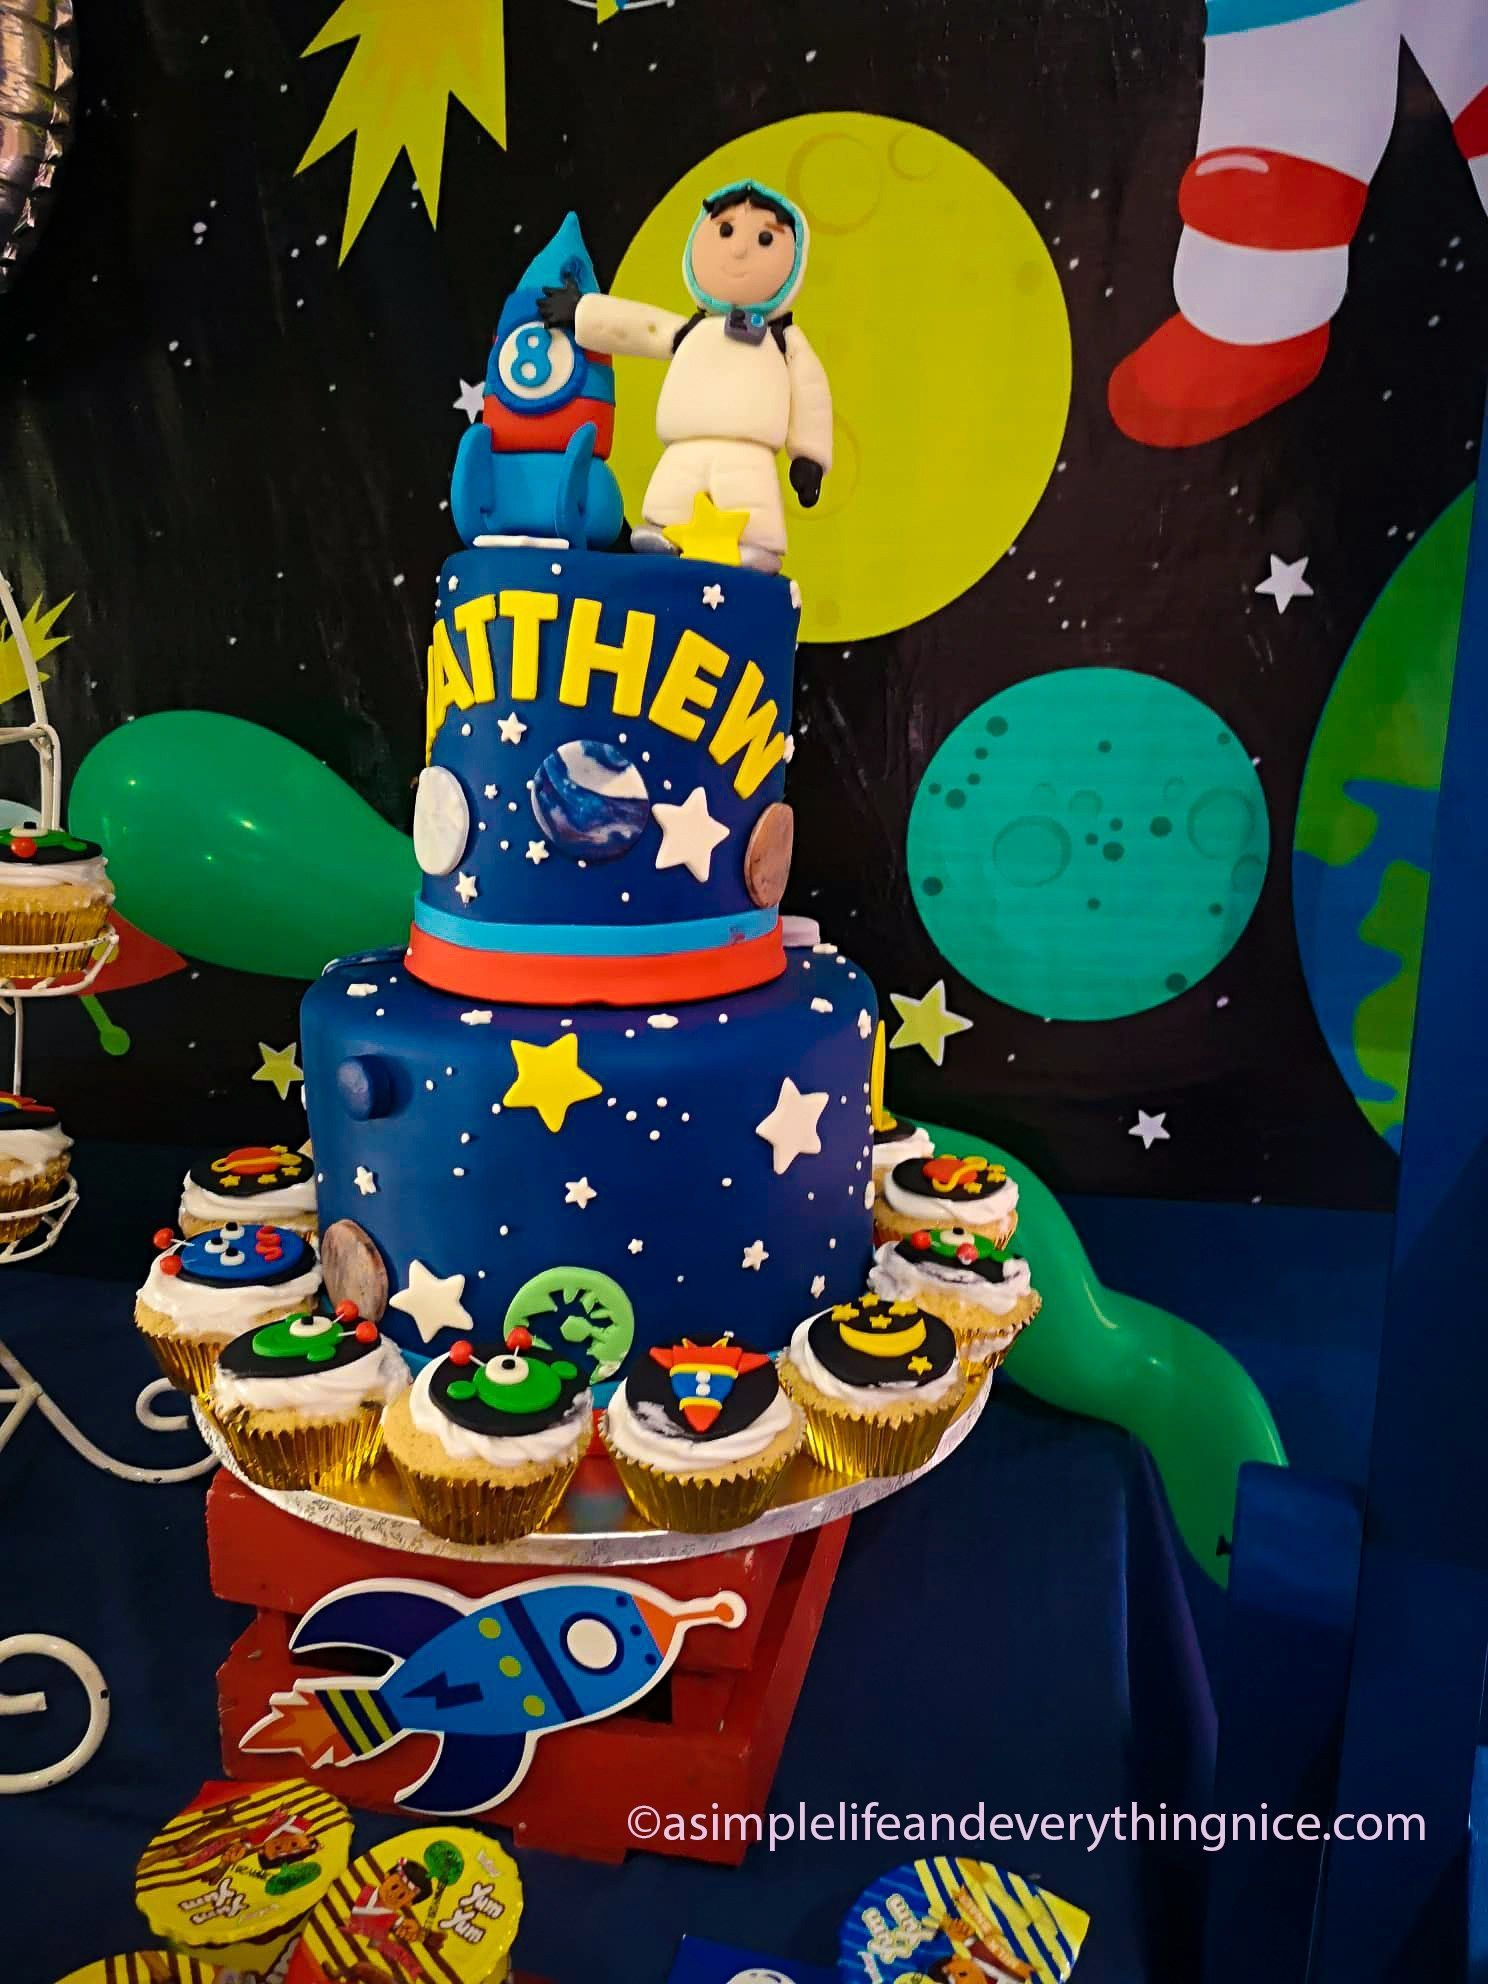 A Space Themed Birthday Party : Matthew's Outer Space 8th Birthday Party with Free Printables - A Simple Life and Everything Nice #outerspaceparty A Space Themed Birthday Party : Matthew's Outer Space 8th Birthday Party with Free Printables - A Simple Life and Everything Nice #outerspaceparty